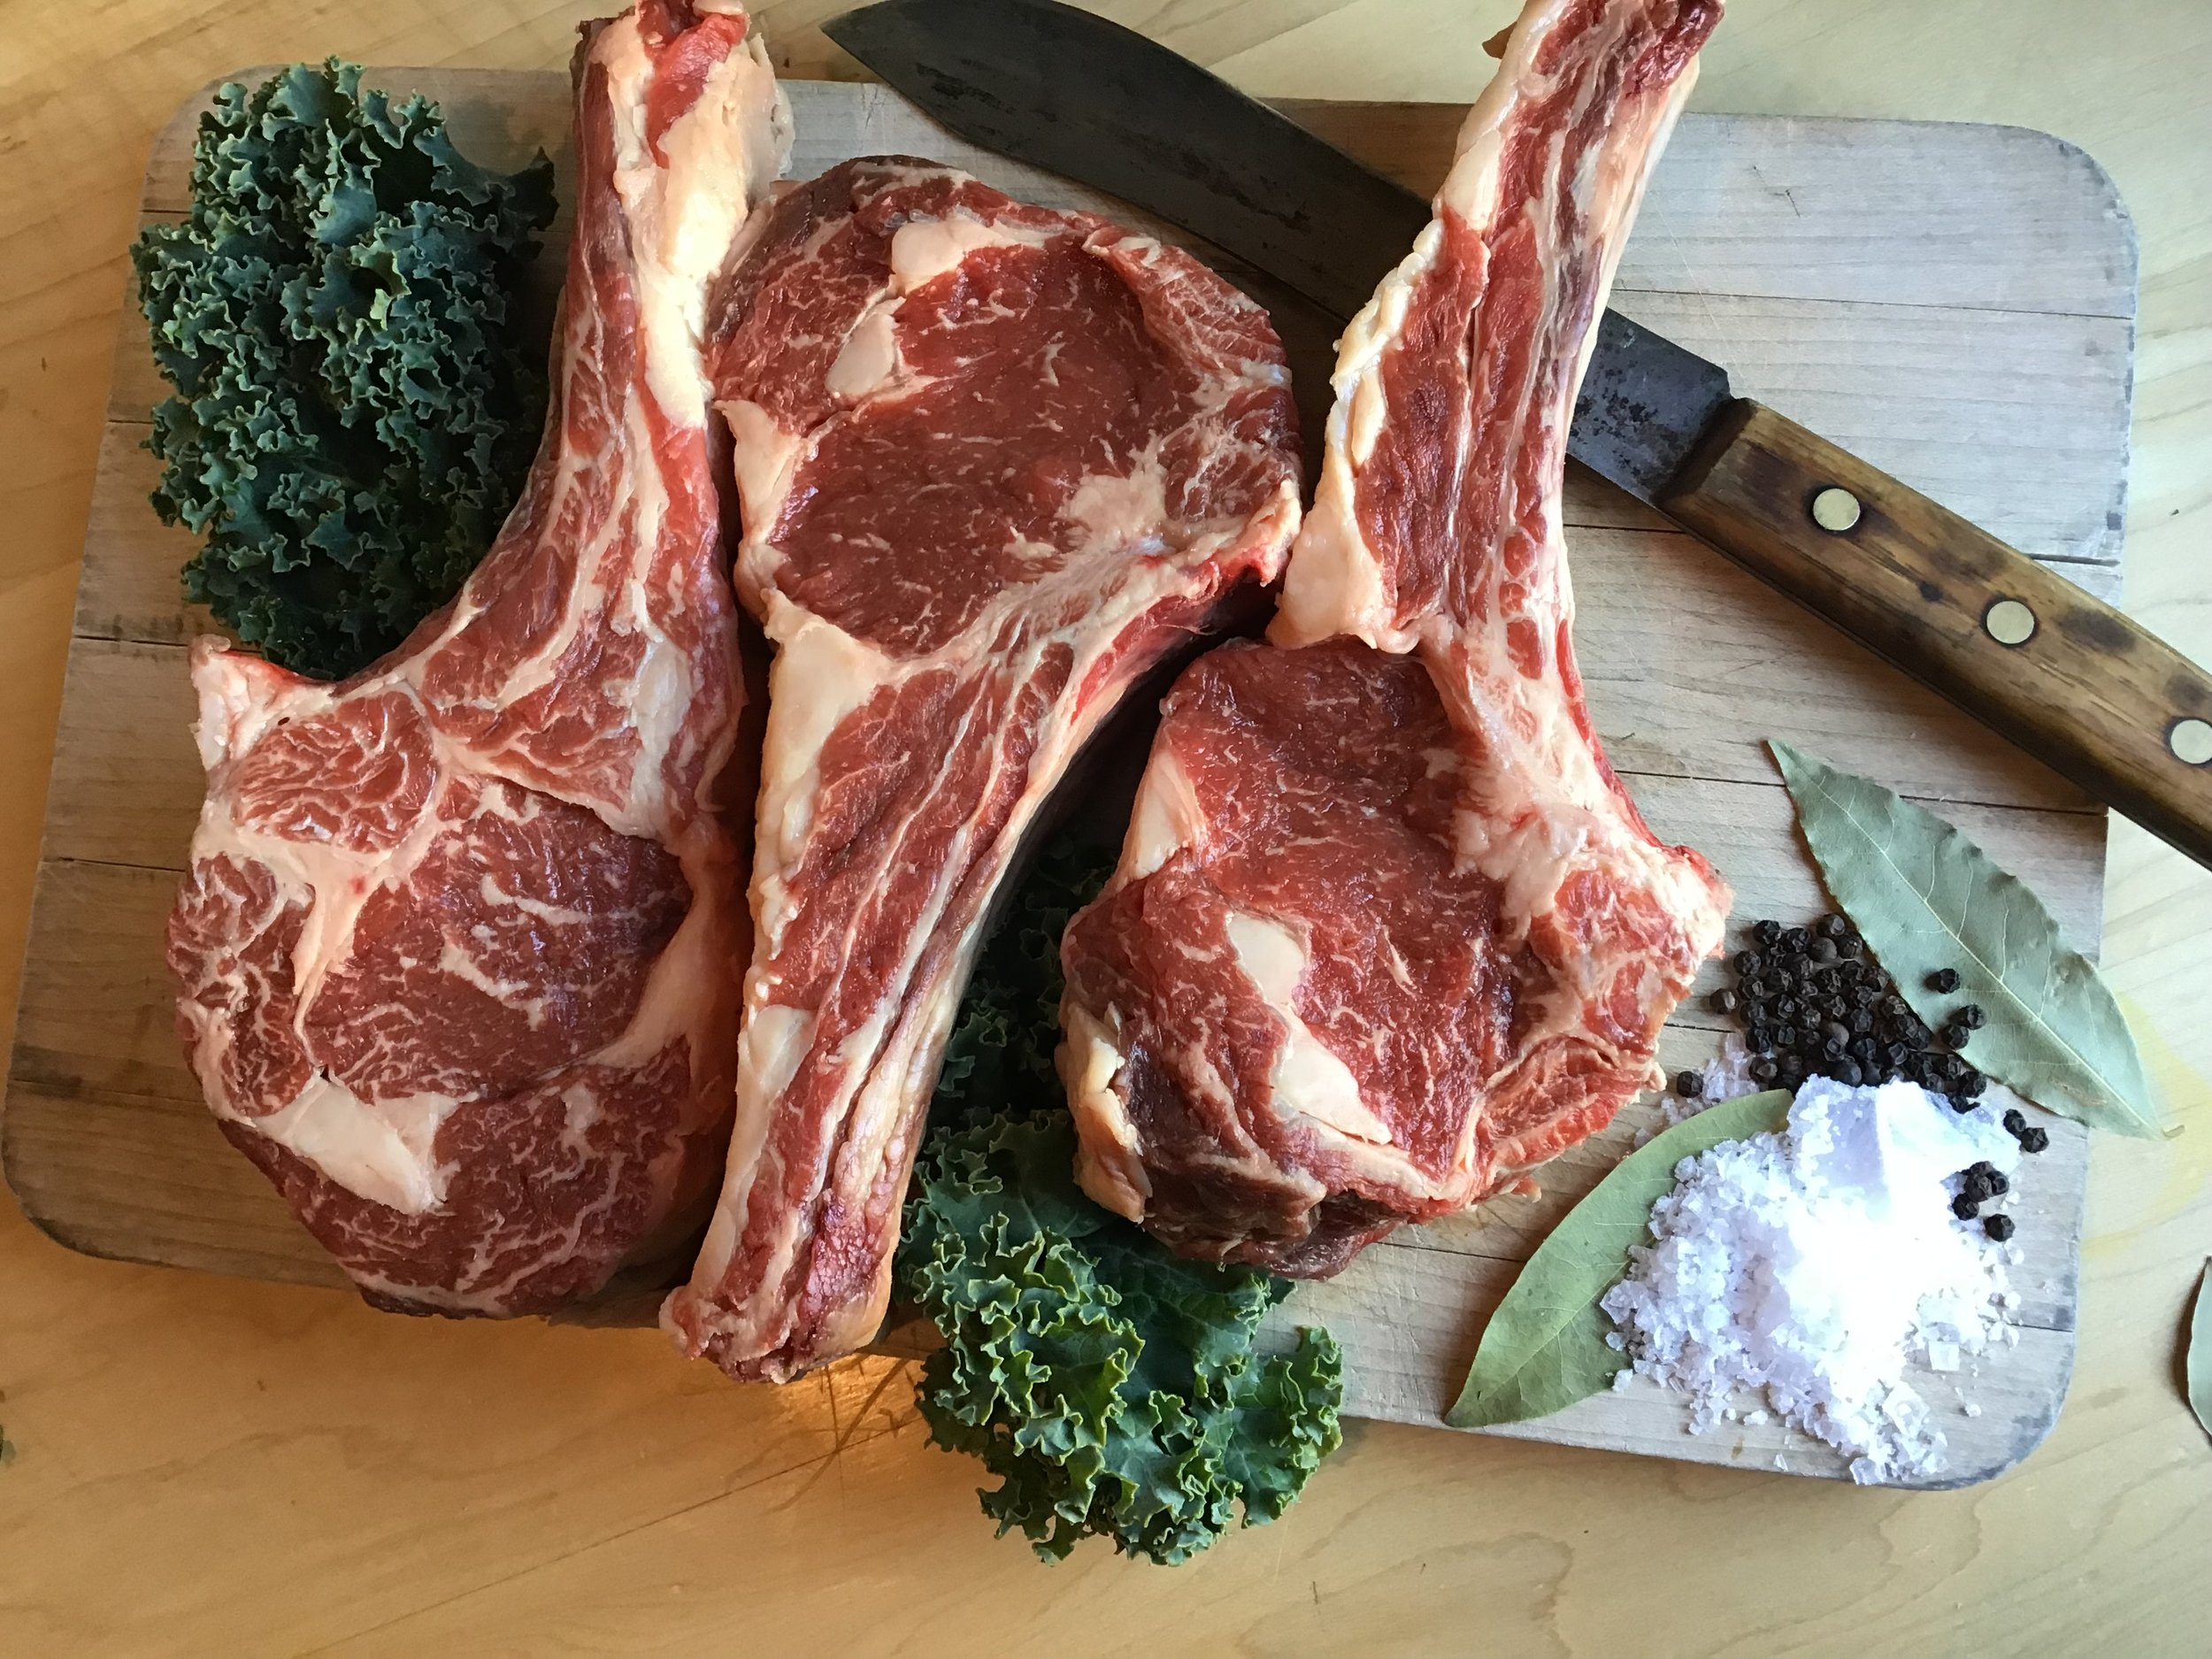 $60 - Large Family - 1 # Cured Sausages2 # Ground Beef1 # Premium Steaks2 # Braising Meats